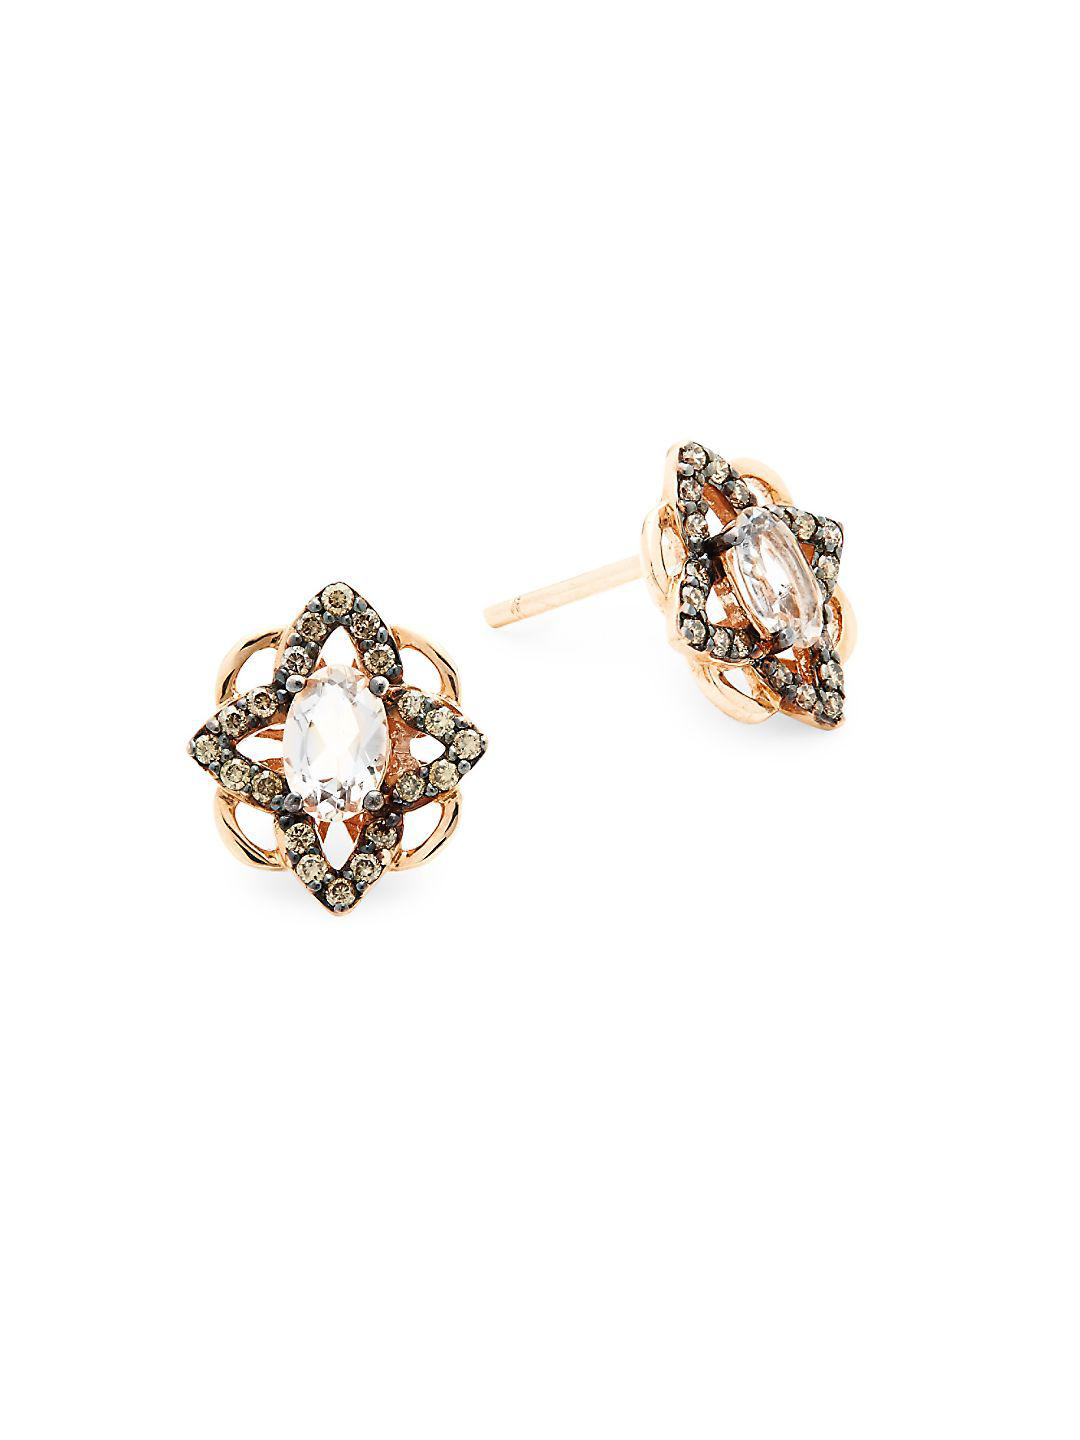 Gallery Previously Sold At Gilt Women S Diamond Earrings Le Vian Chocolate